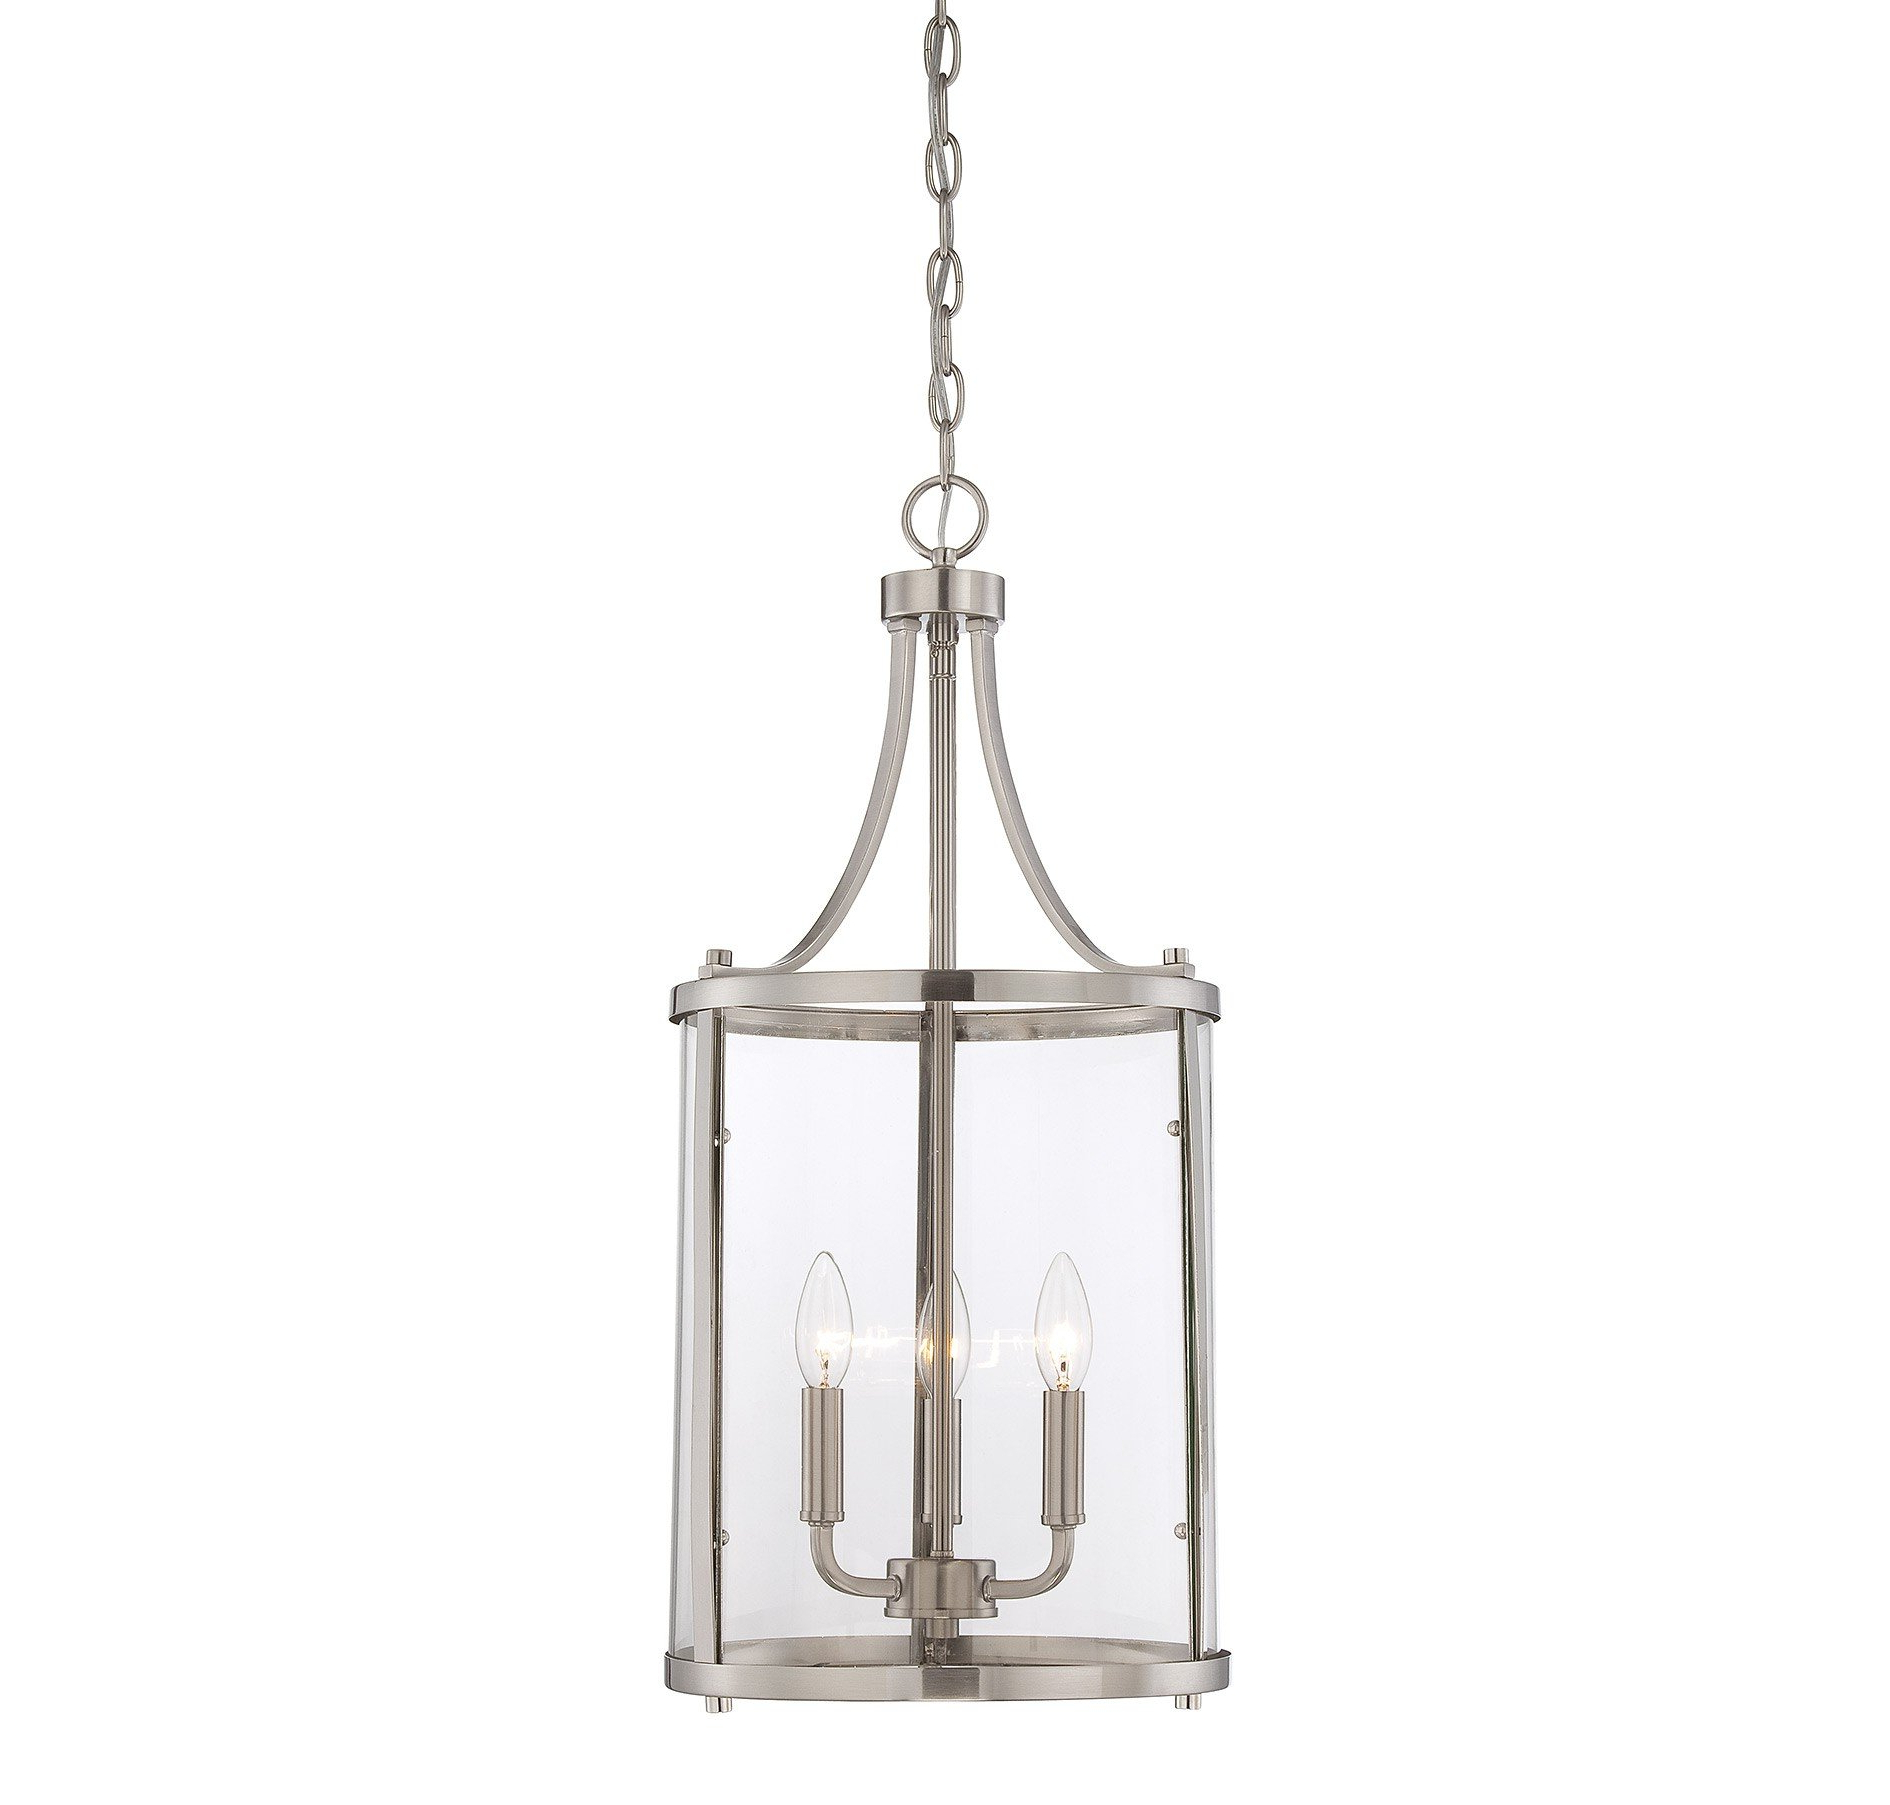 3 Light Lantern Cylinder Pendant With Most Recent Tessie 3 Light Lantern Cylinder Pendants (View 4 of 20)